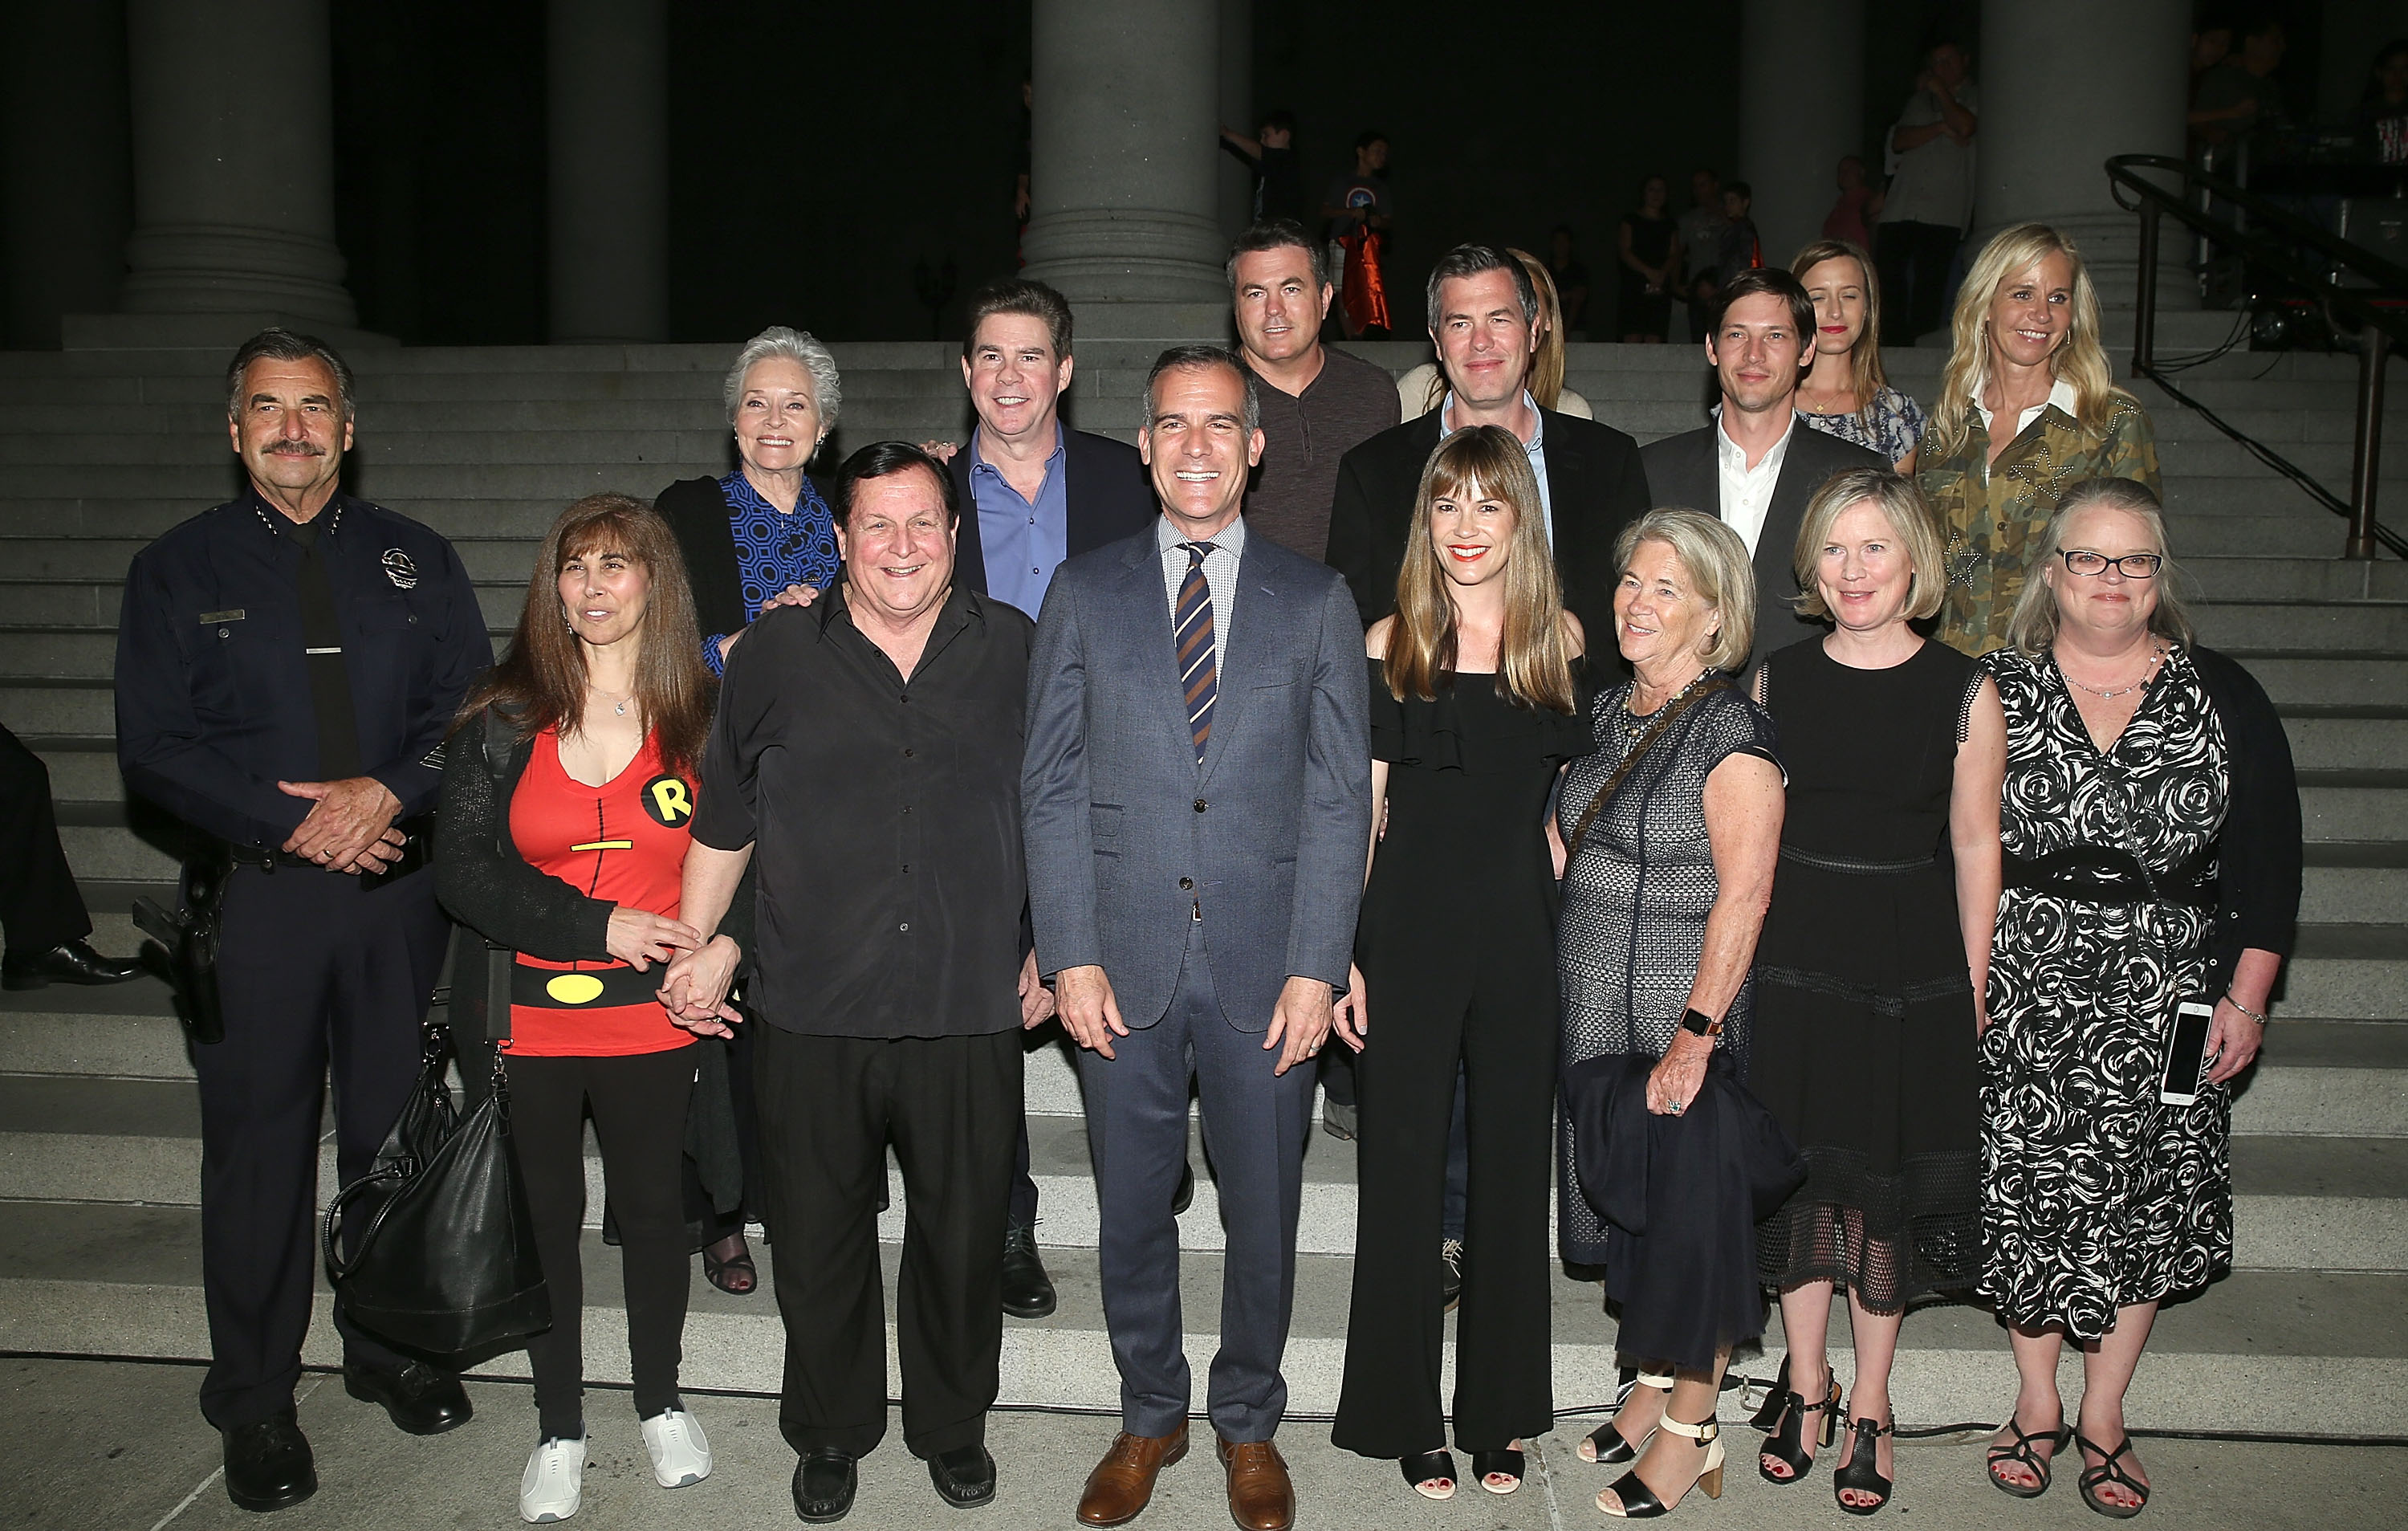 attend The City of Los Angeles and DC Entertainment Bat-Signal Lighting Ceremony honoring Adam West at Los Angeles City Hall on June 15, 2017 in Los Angeles, California.